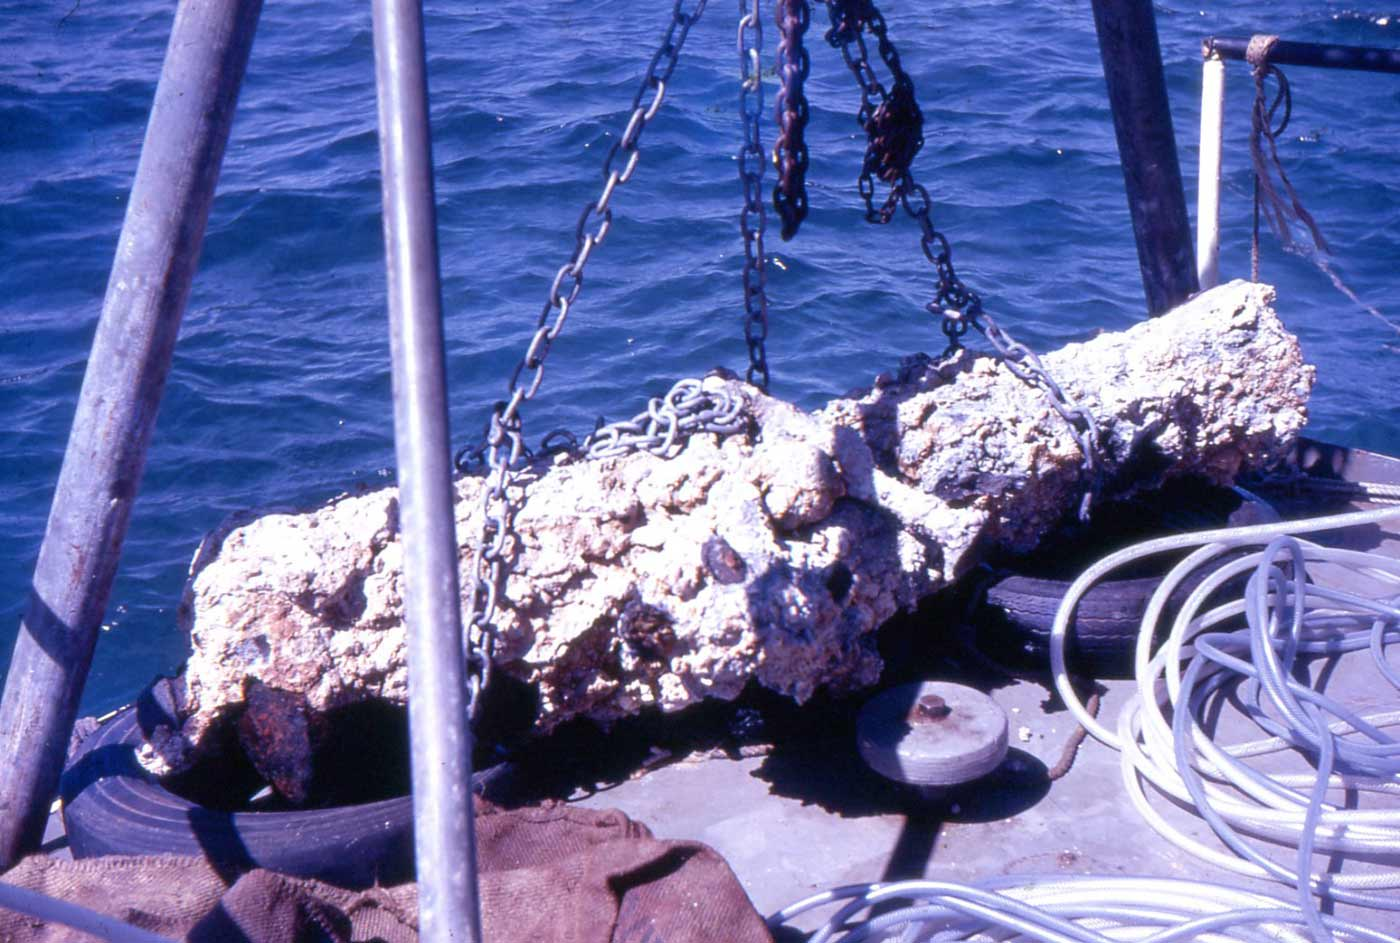 Colour photo of a cannon covered in coral and sediment after being lifted with chains from the sea. - click to view larger image